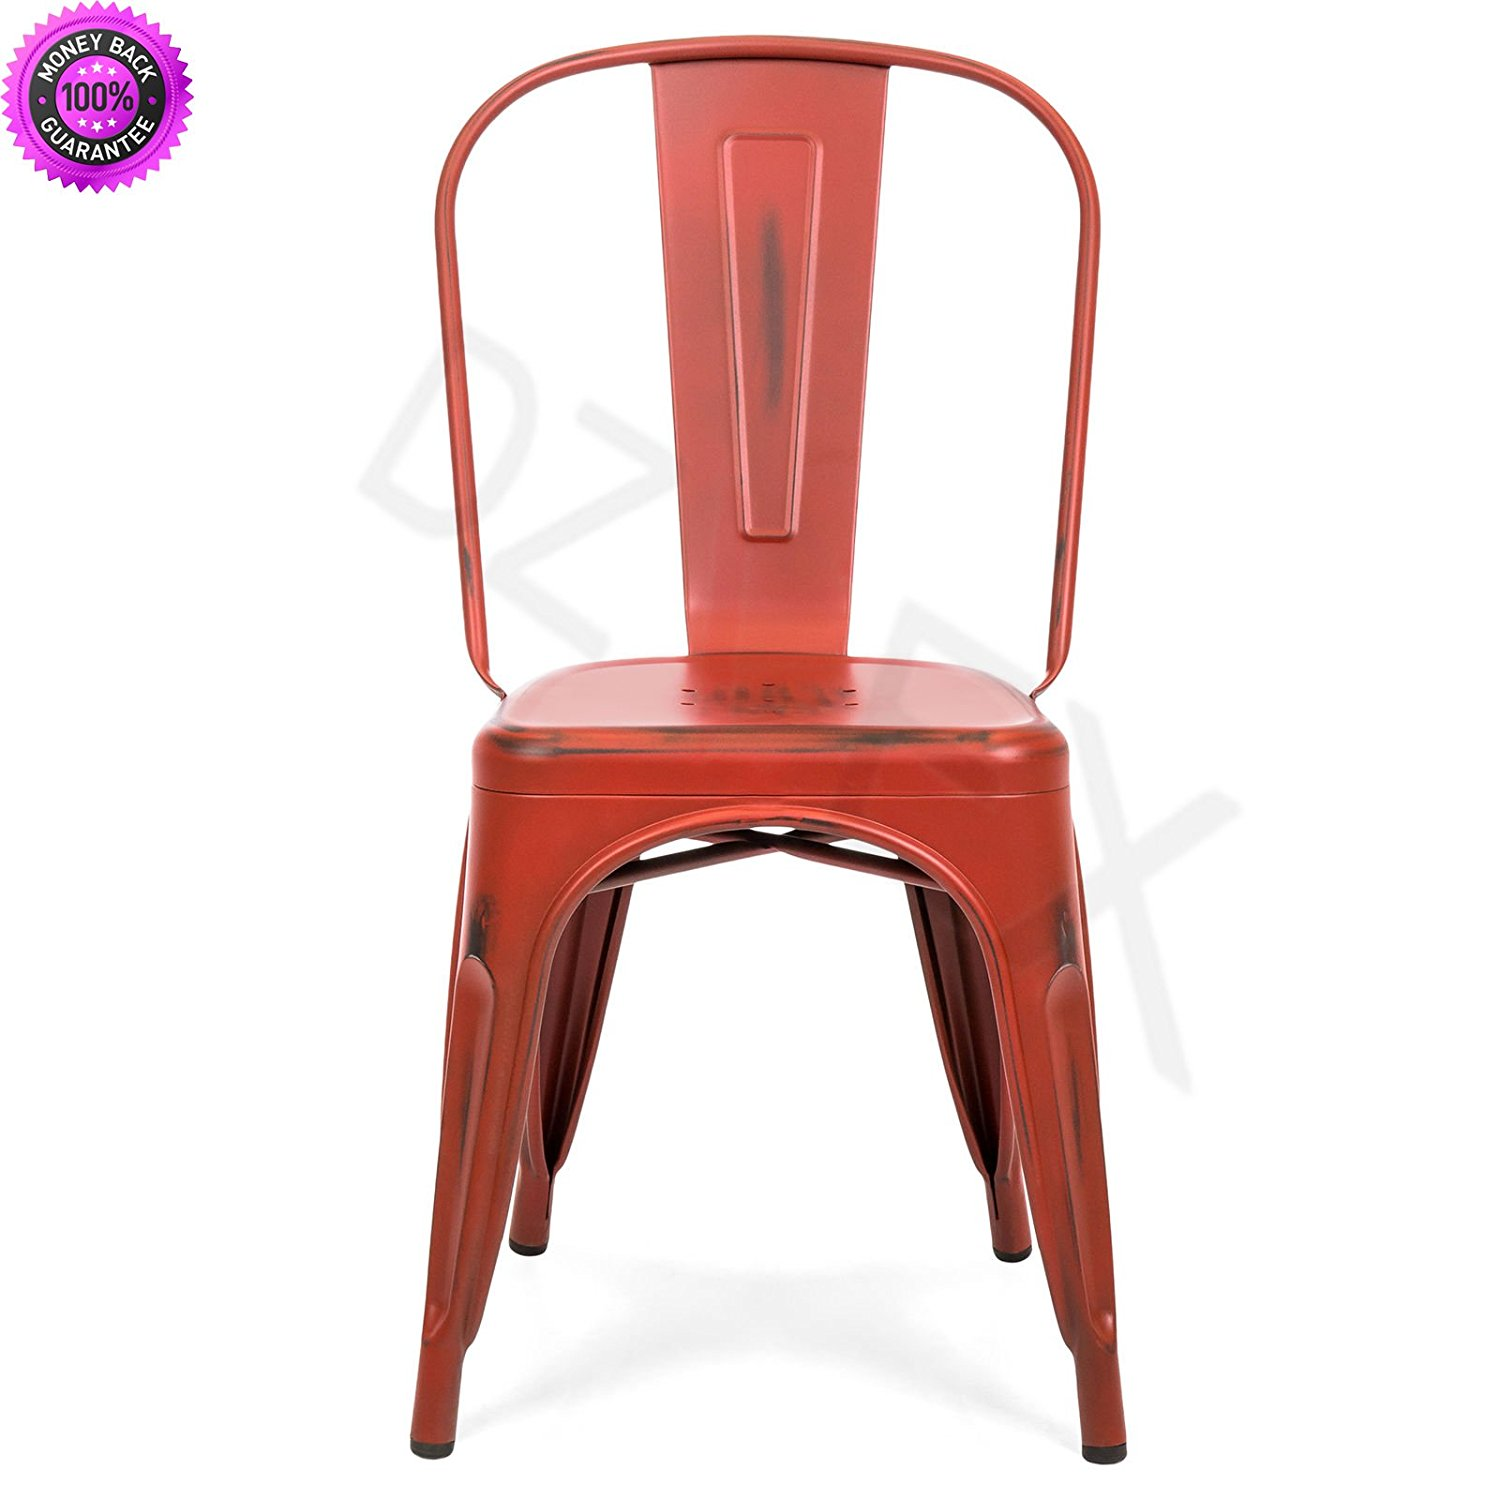 DzVeX__Set of 4 Distressed Industrial Metal Dining Side Chairs (Red) And chair lifts restaurant chairs stacking chairs waiting room chairs office furniture chair mats for carpet chairs for sale cheap